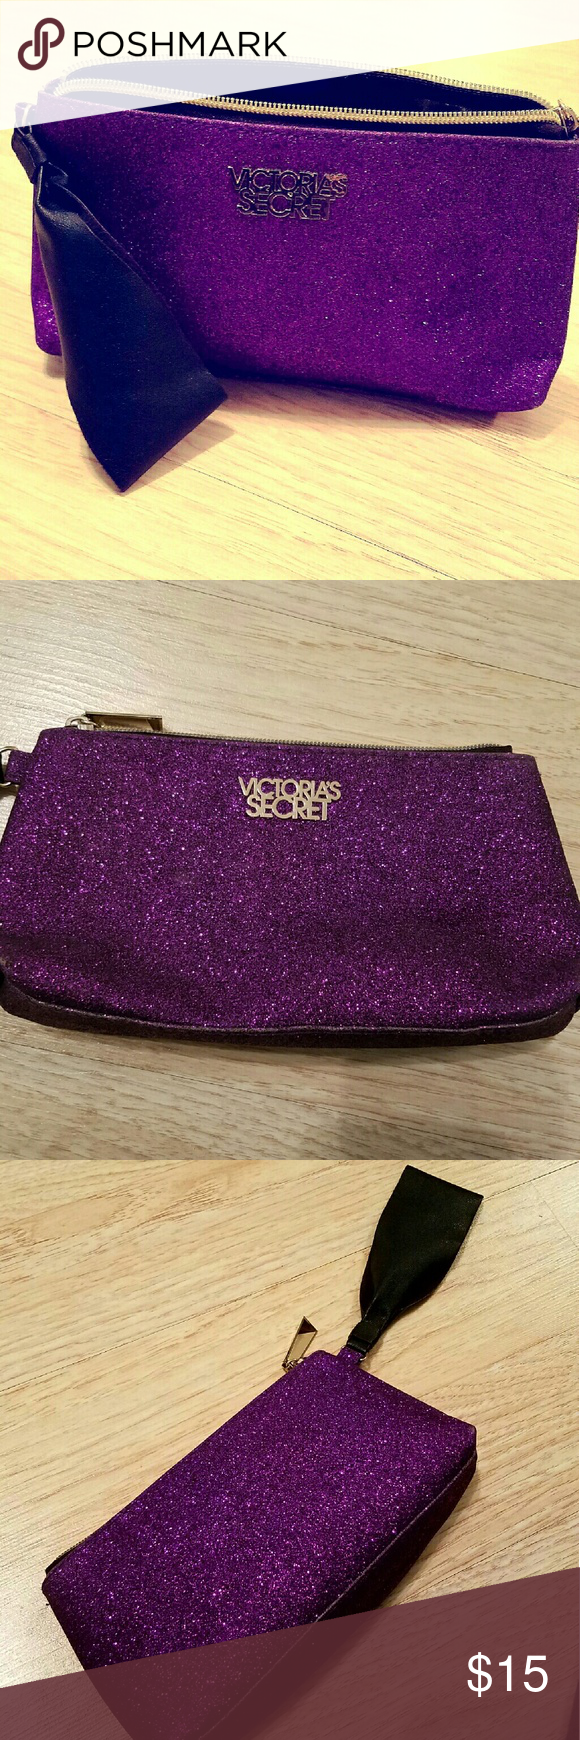 Victoria's Secret Glitter Cosmetic Bag Barely used, excellent condition! Measures 9 in wide by 5 in tall. Adorable little bag! Very clean interior as well Victoria's Secret Bags Cosmetic Bags & Cases